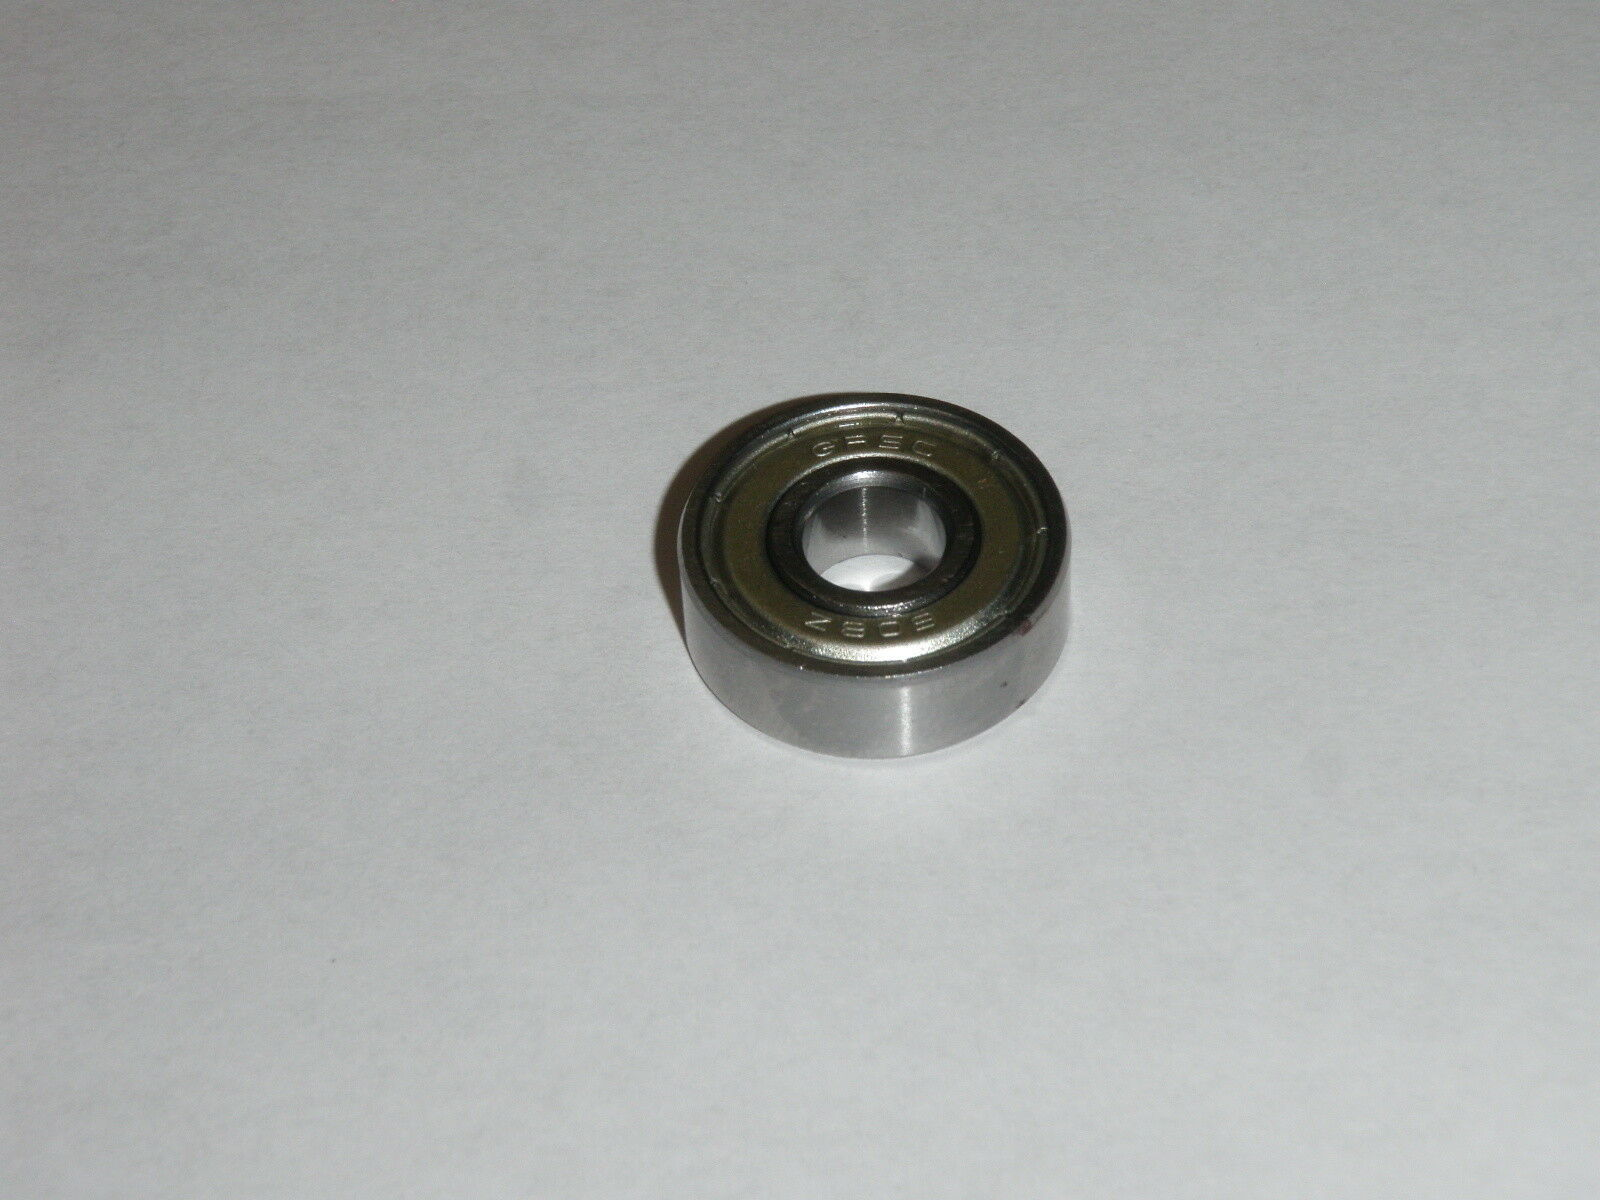 Primary image for Toastmaster Bread Maker Bearing for Pan Assembly Models 1170S 1171 1186 1187S